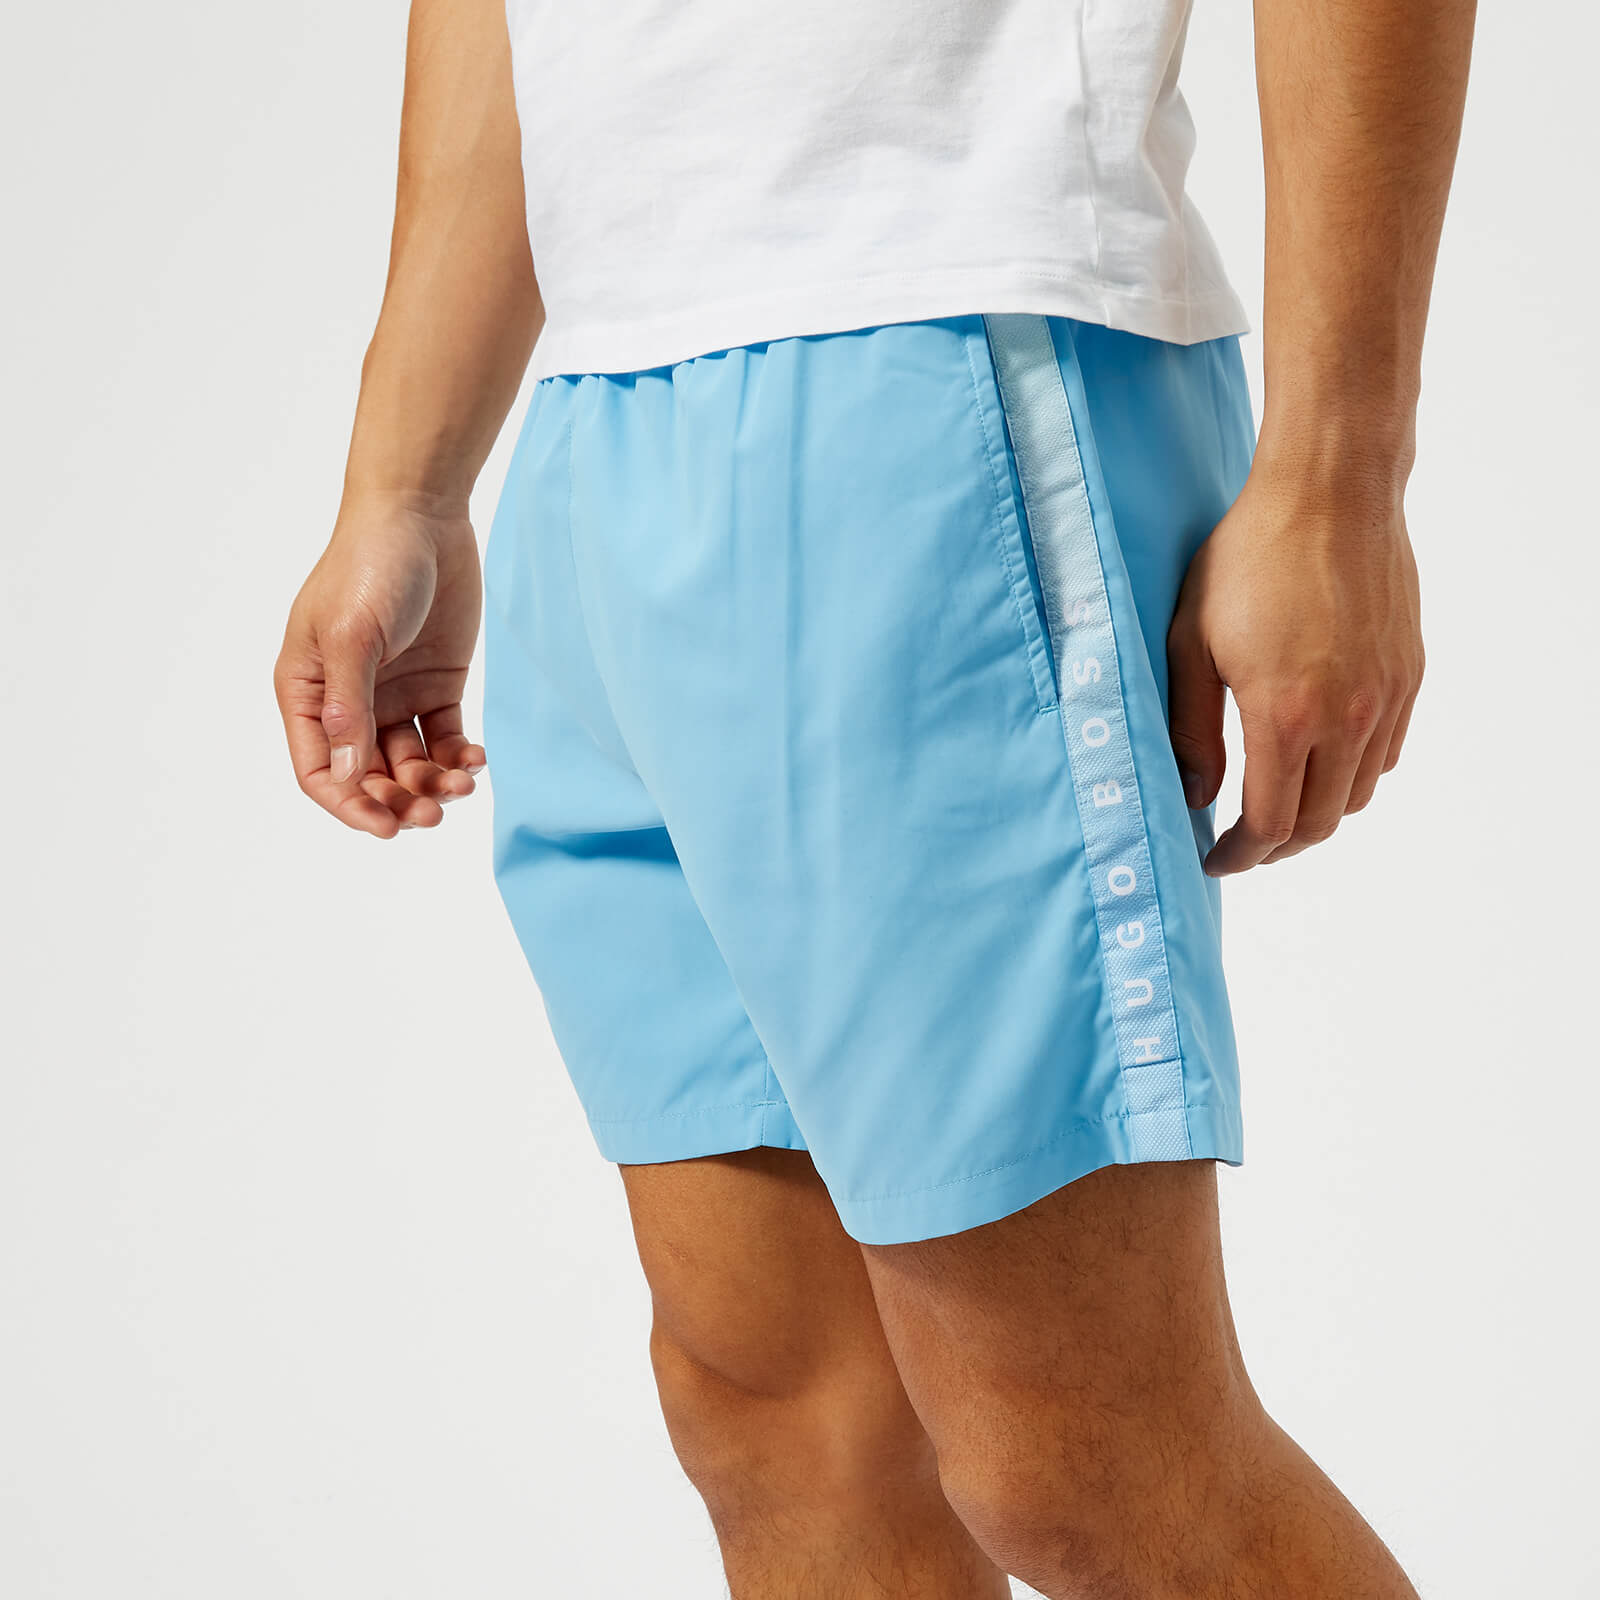 4e915f728 BOSS Hugo Boss Men's Seabream Swim Shorts - Pale Blue Mens Underwear |  TheHut.com